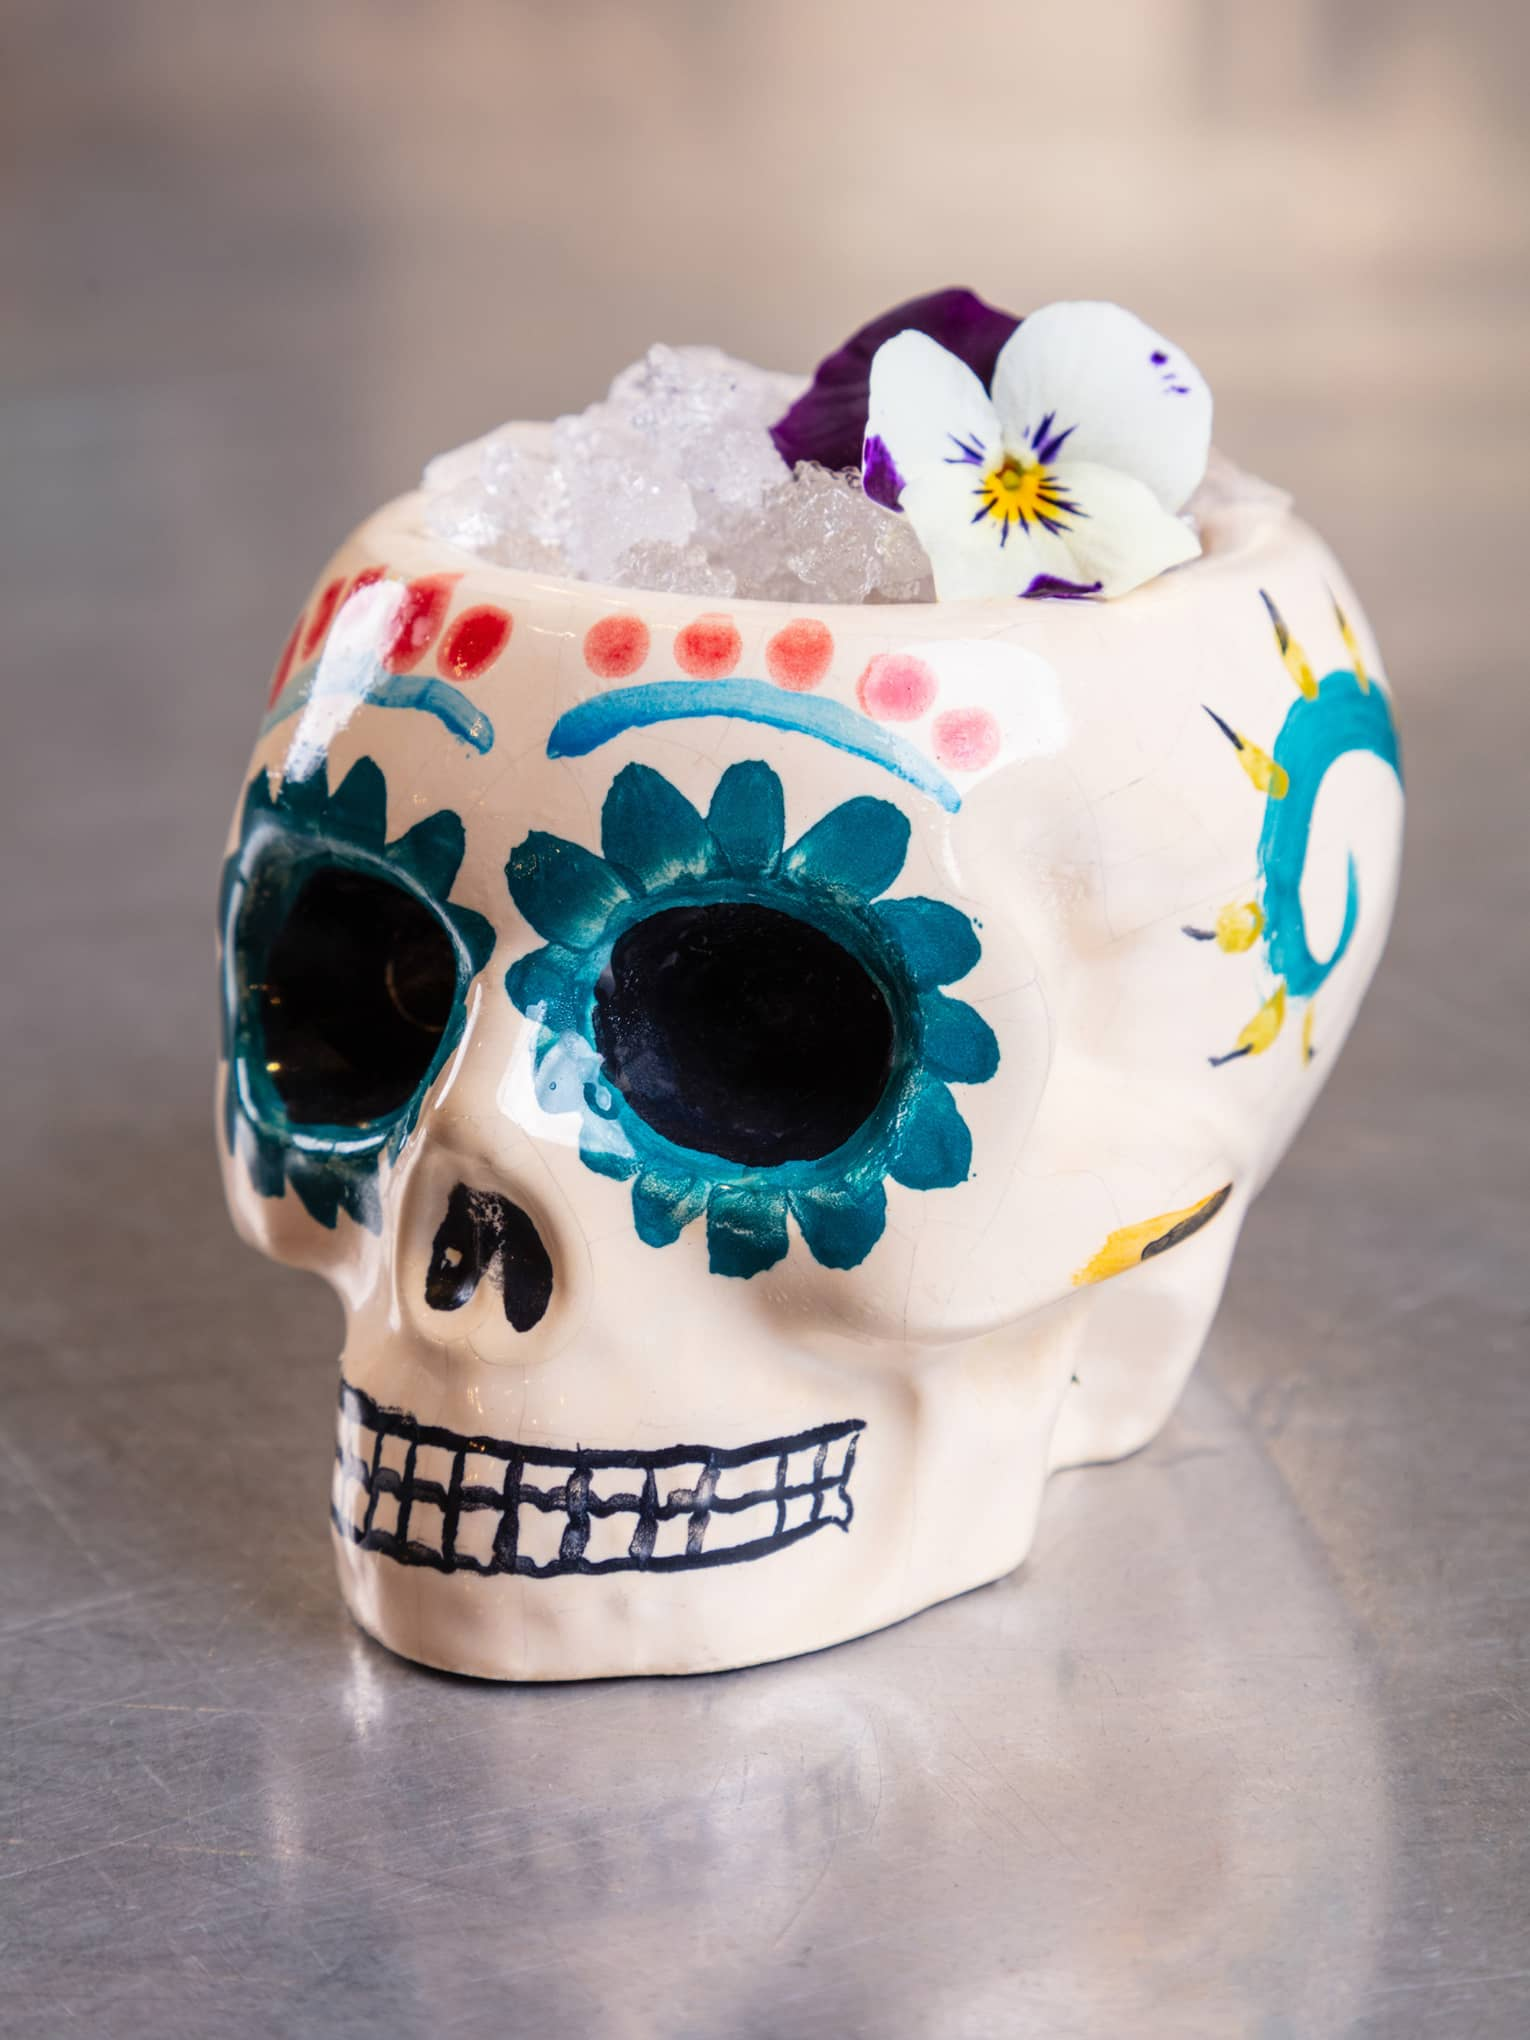 A cocktail is served in a hand-painted ceramic skull glass